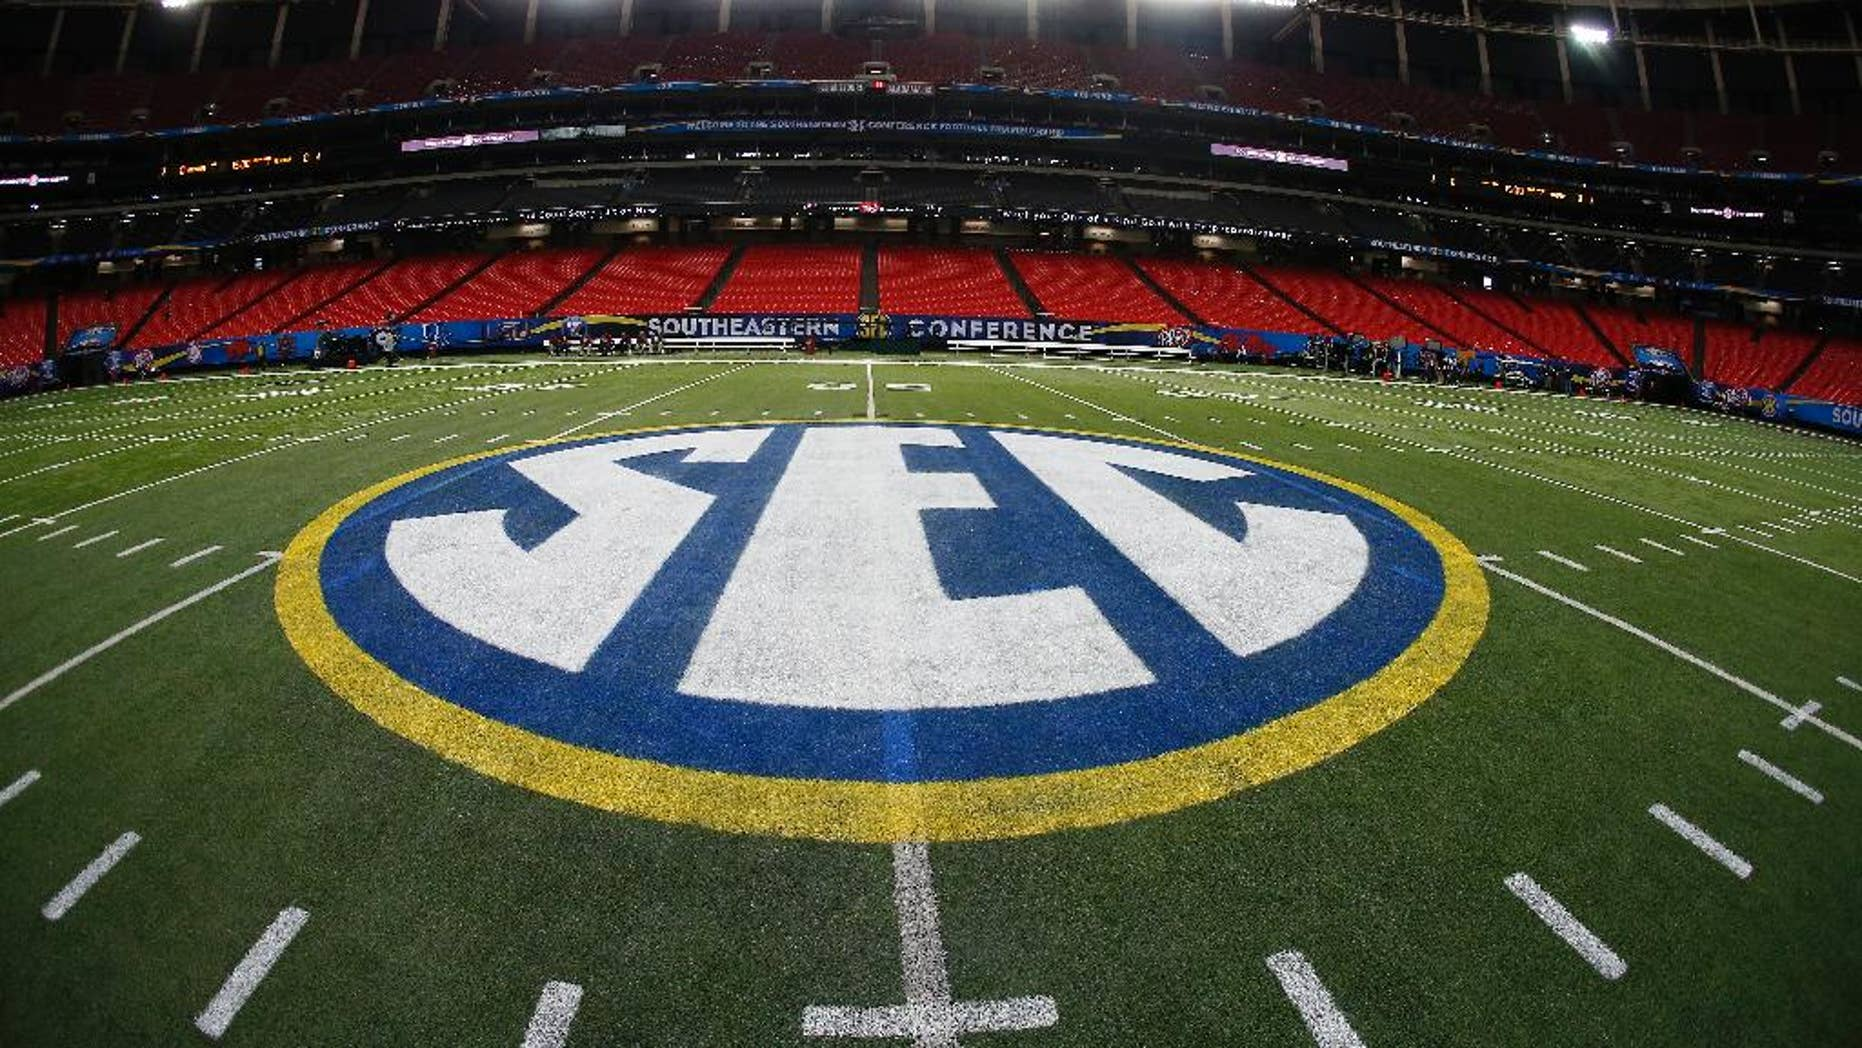 The SEC logo is seen Friday, Dec. 5, 2014, in Atlanta, ahead of the Southeastern Conference championship football game between Alabama and Missouri held Saturday. (AP Photo/John Bazemore)